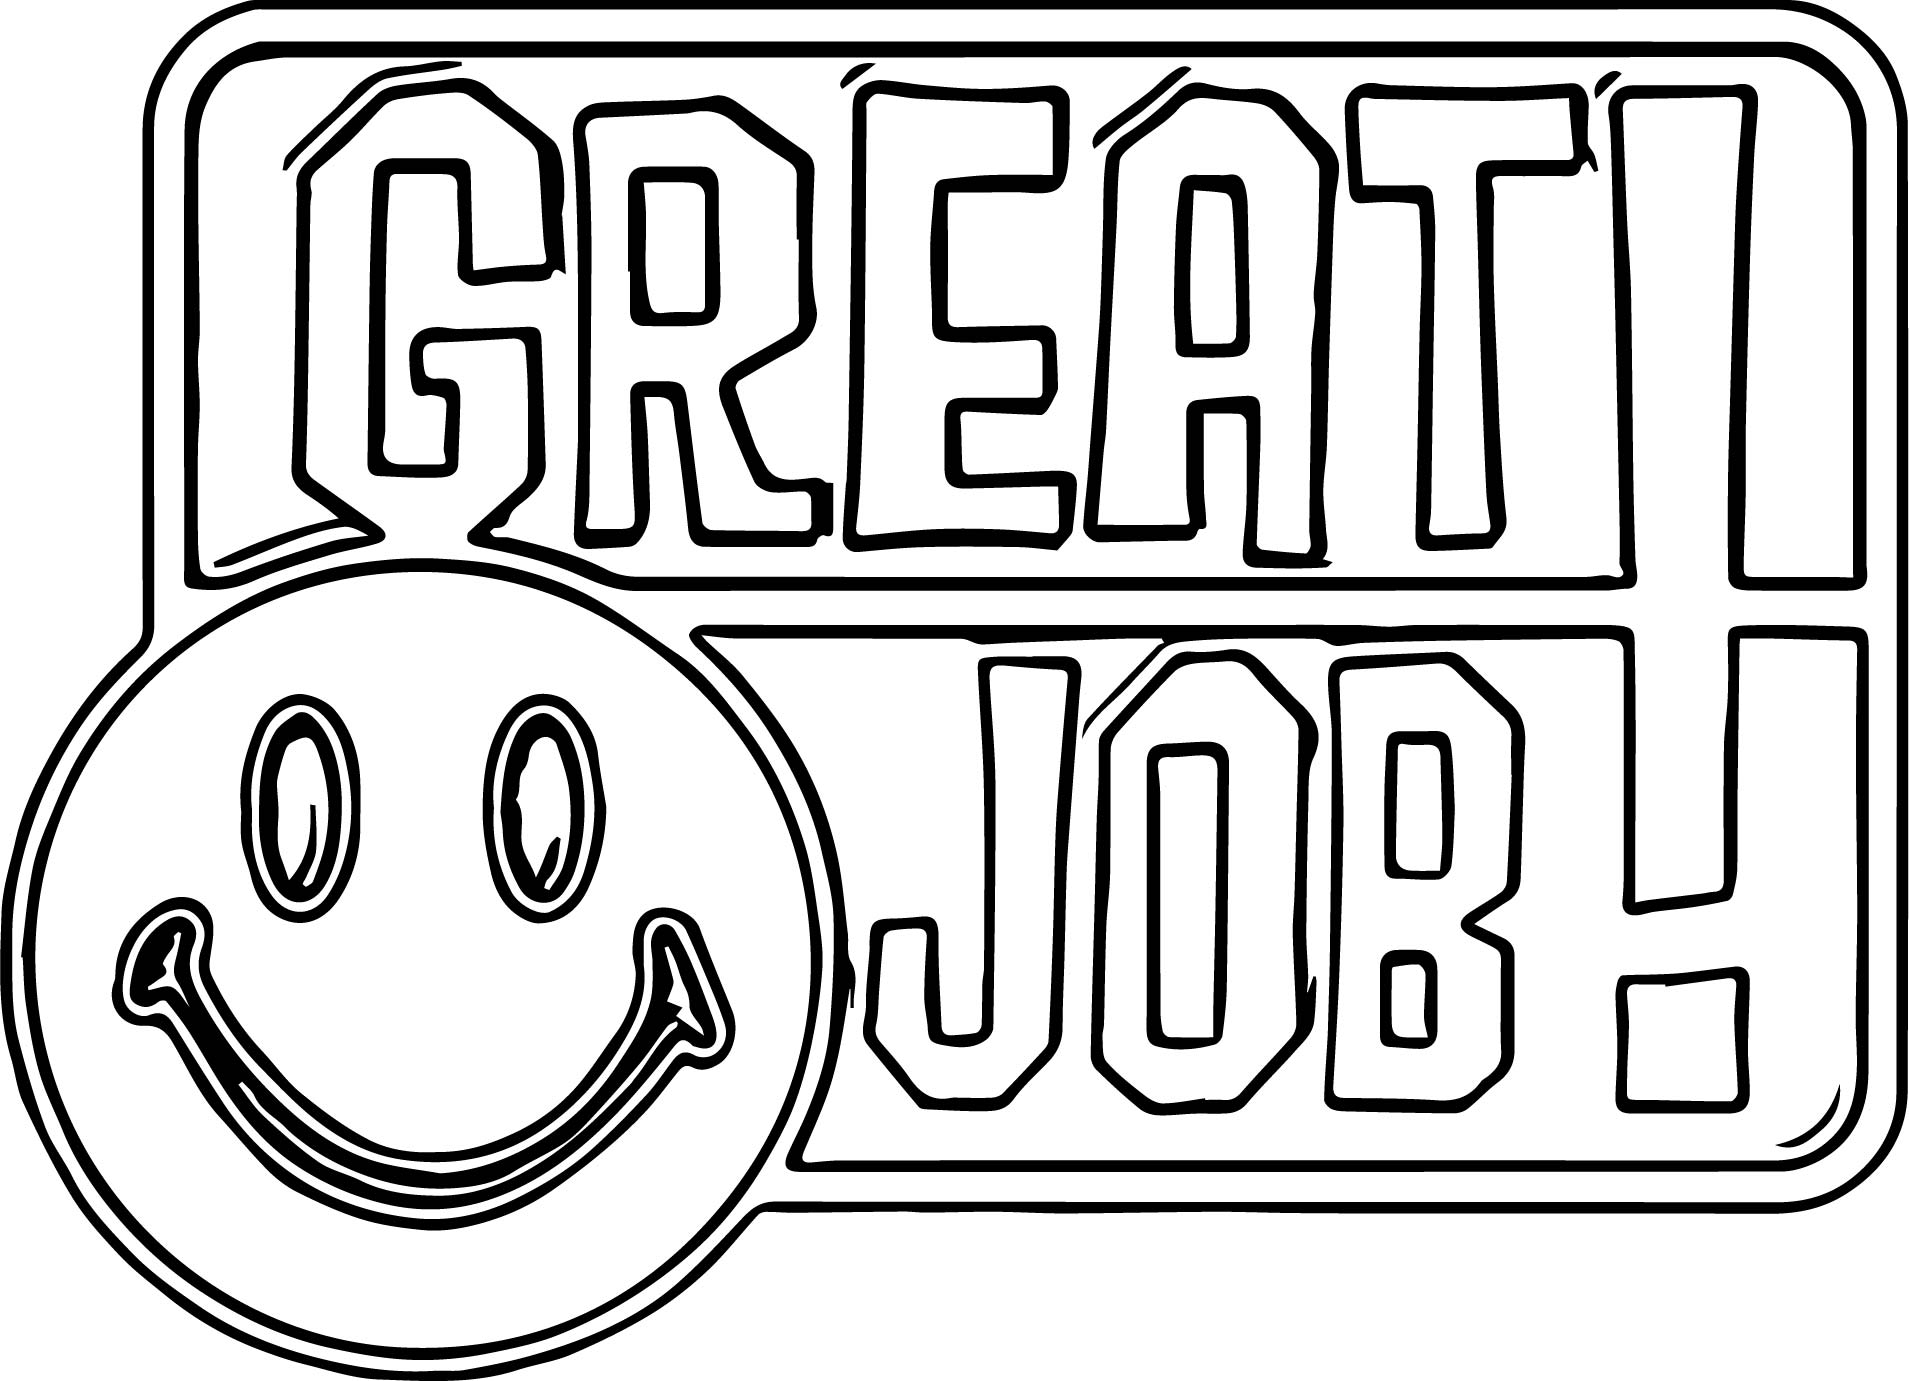 Awesome Great Job Outline Coloring Page Wecoloringpage